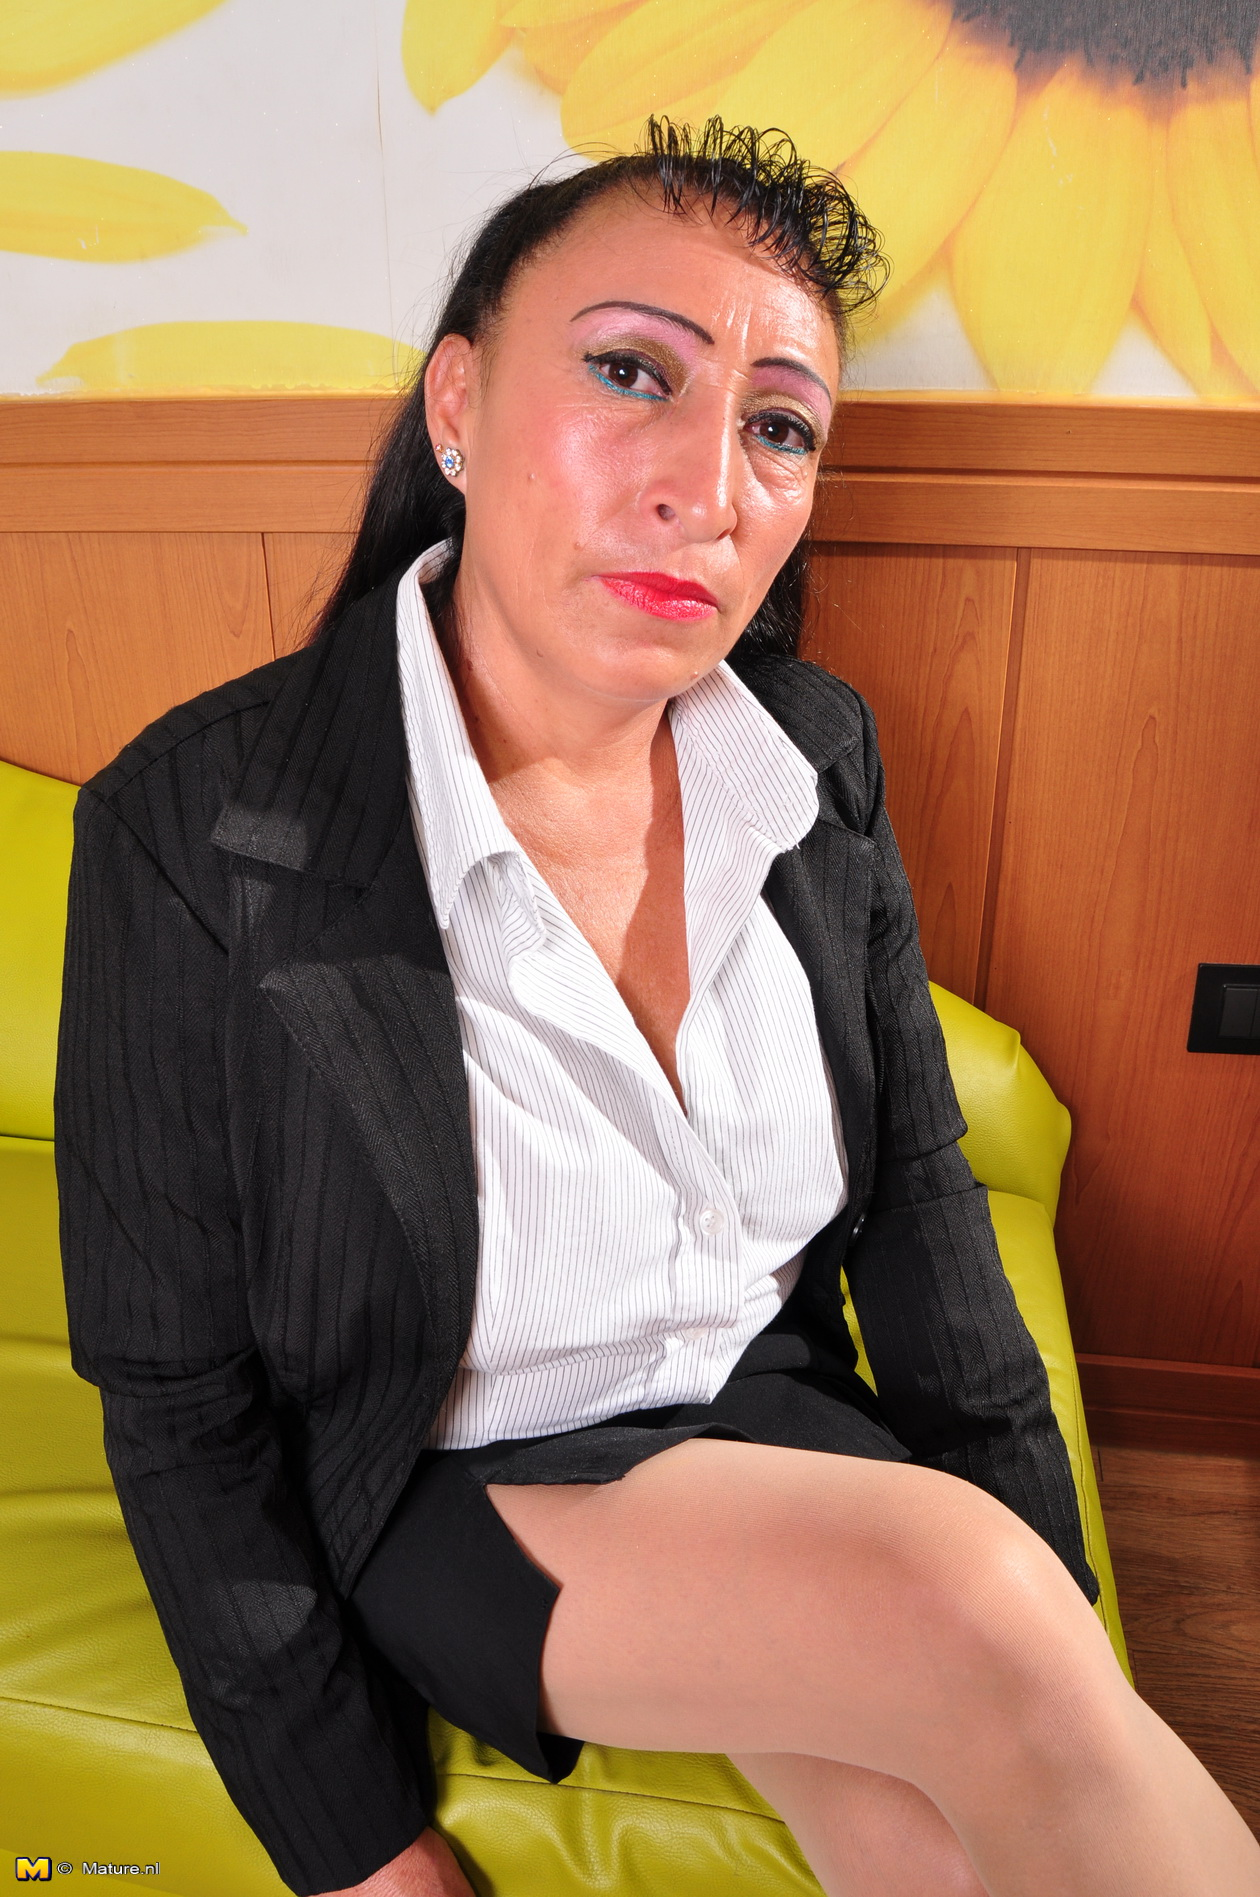 hairy latina mom | the hairy lady blog